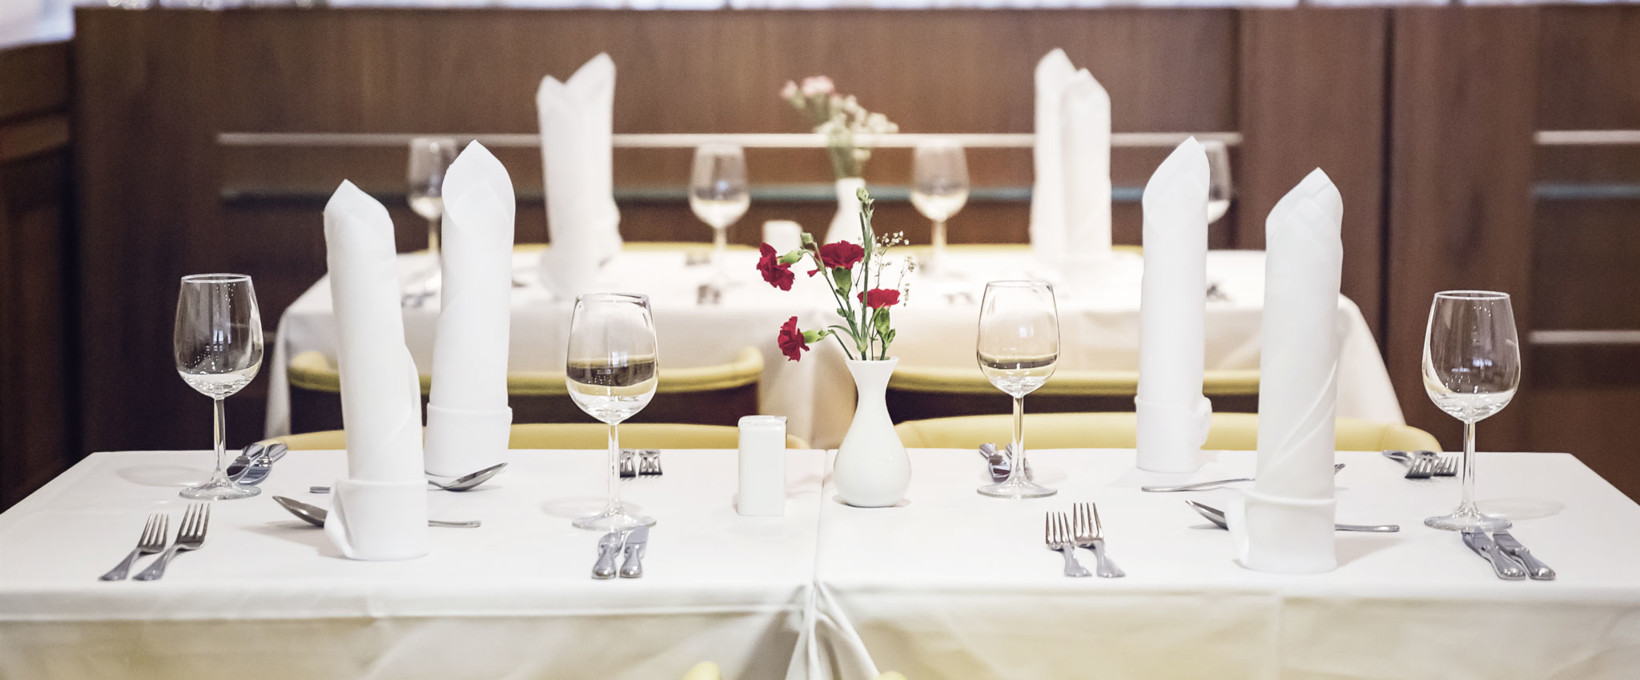 Restaurant with laid table | Hotel Ljubljana in Slovenia